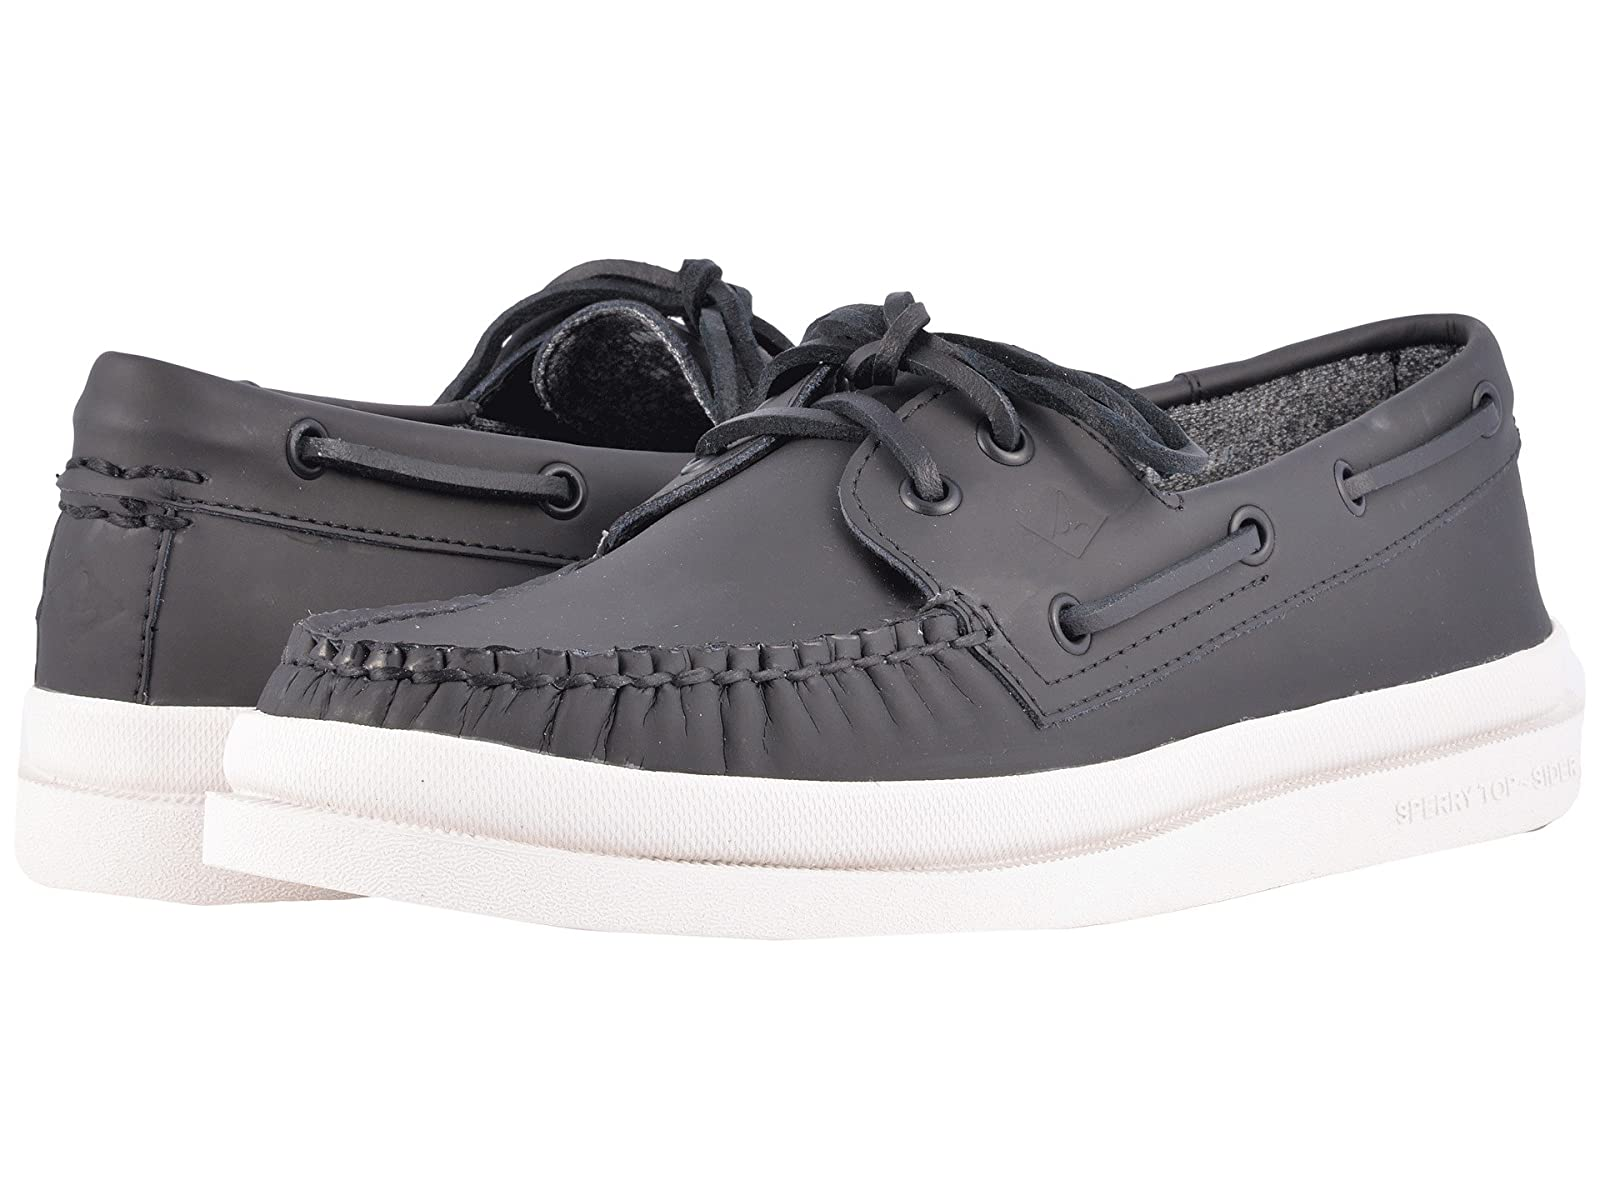 Sperry A/O 2-Eye RaincoatCheap and distinctive eye-catching shoes